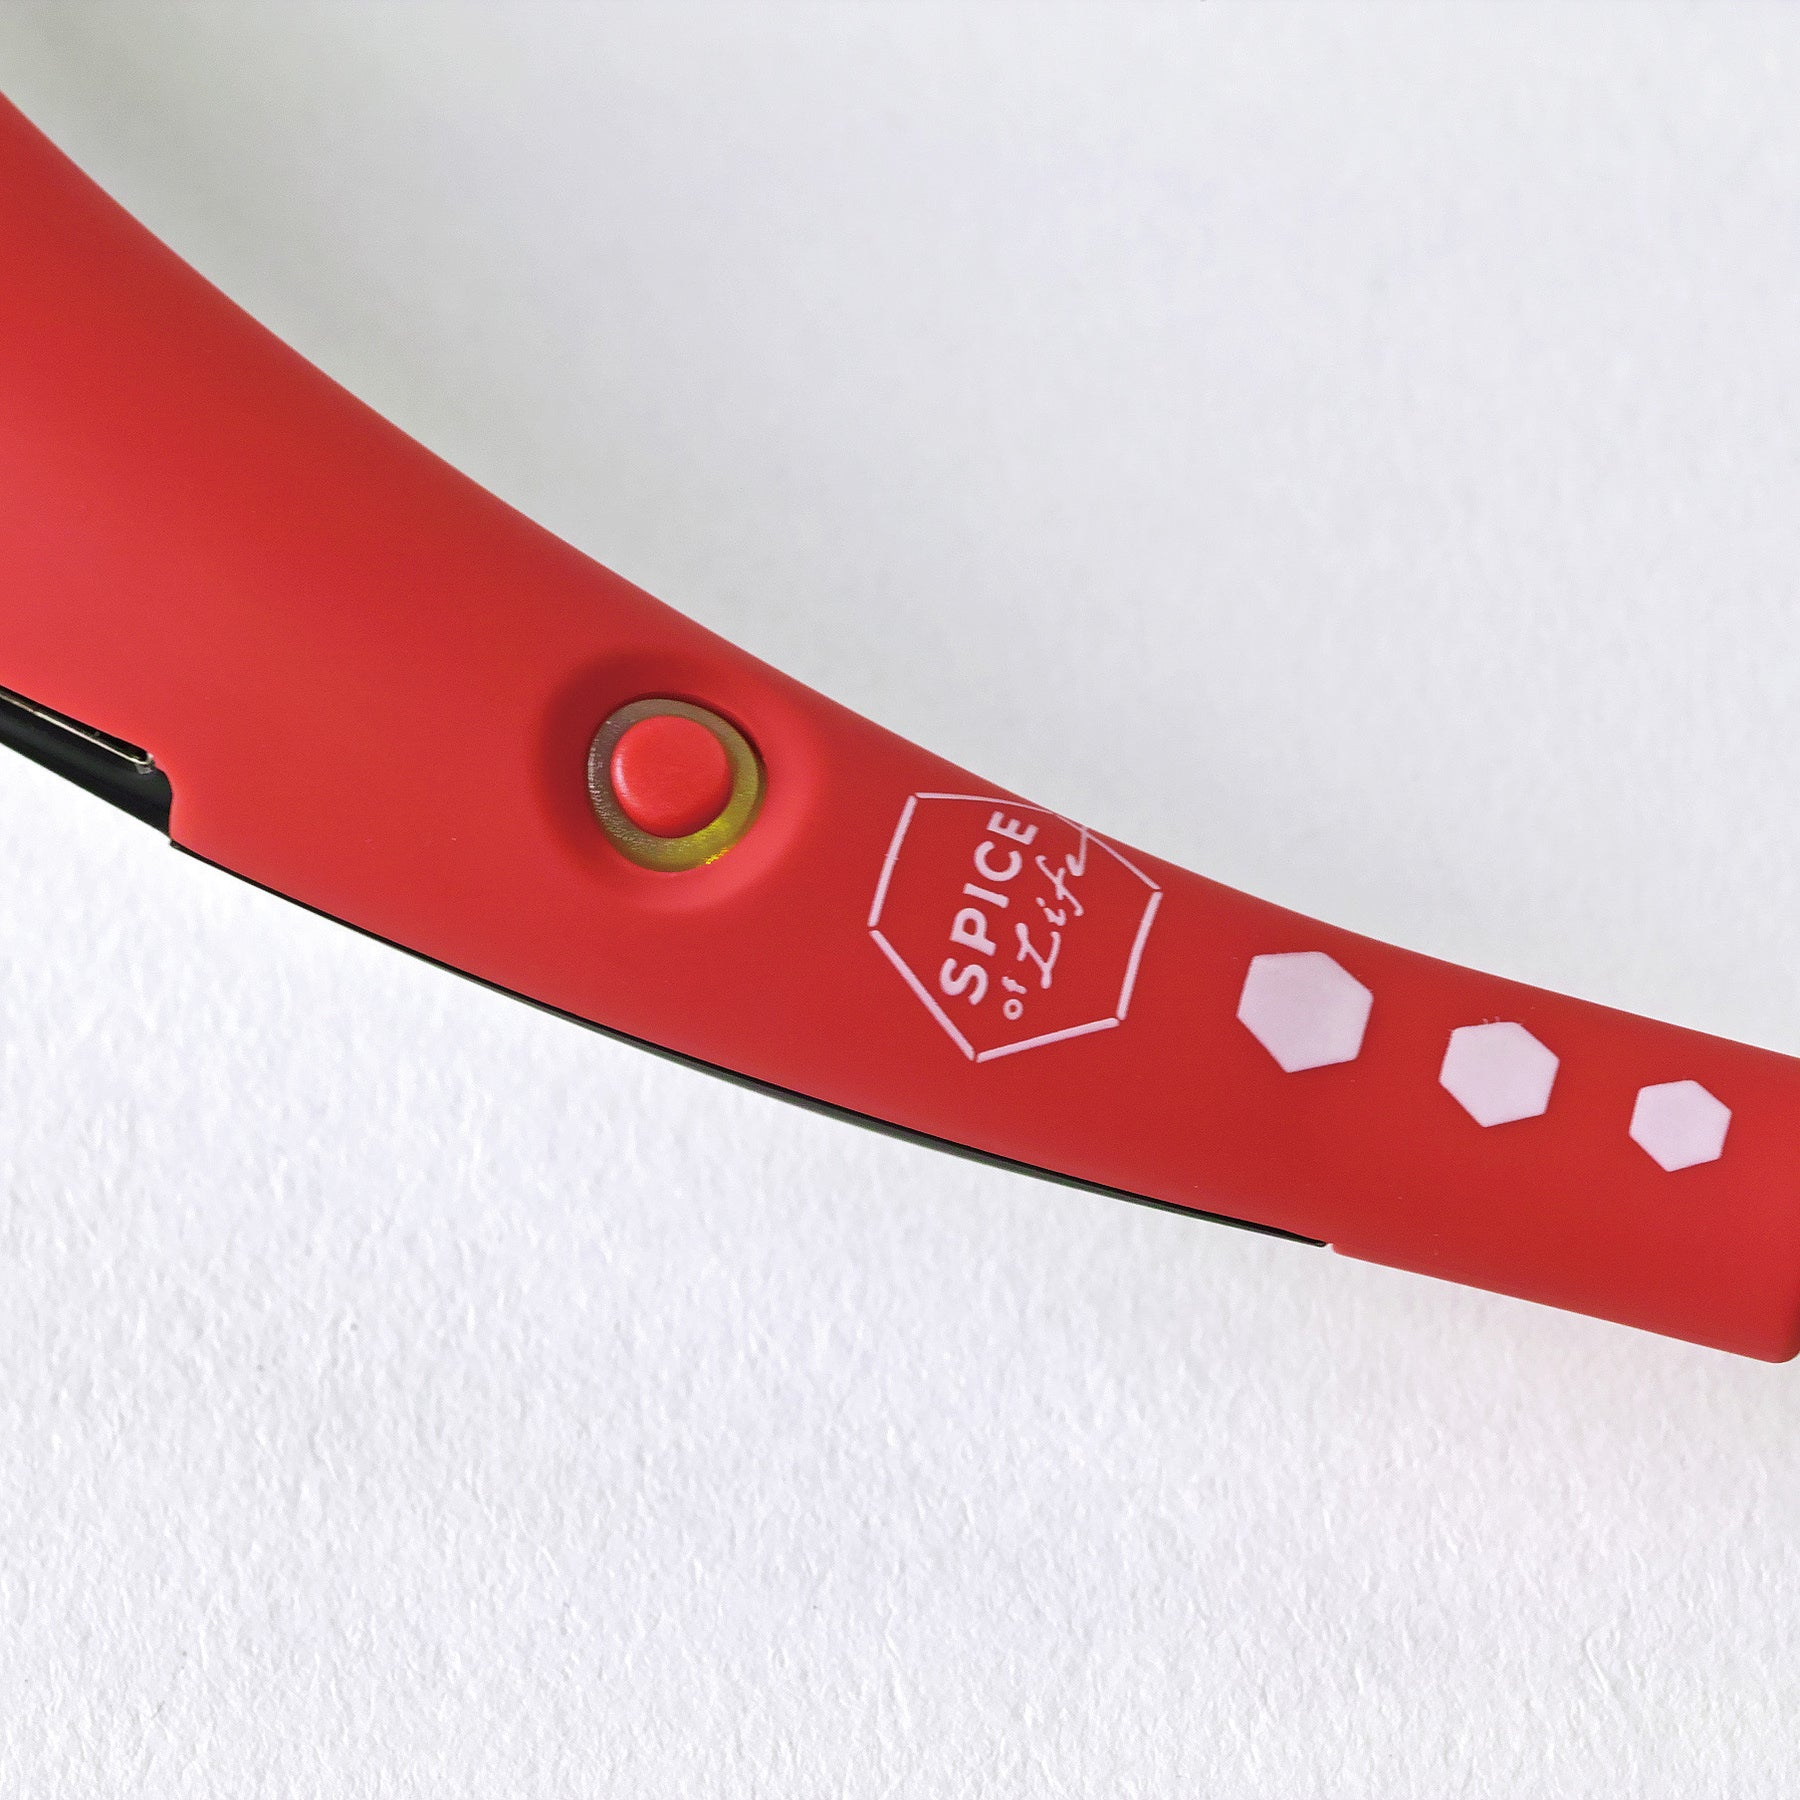 W Fan Wearable Hands free fan 2.0 Edition Red